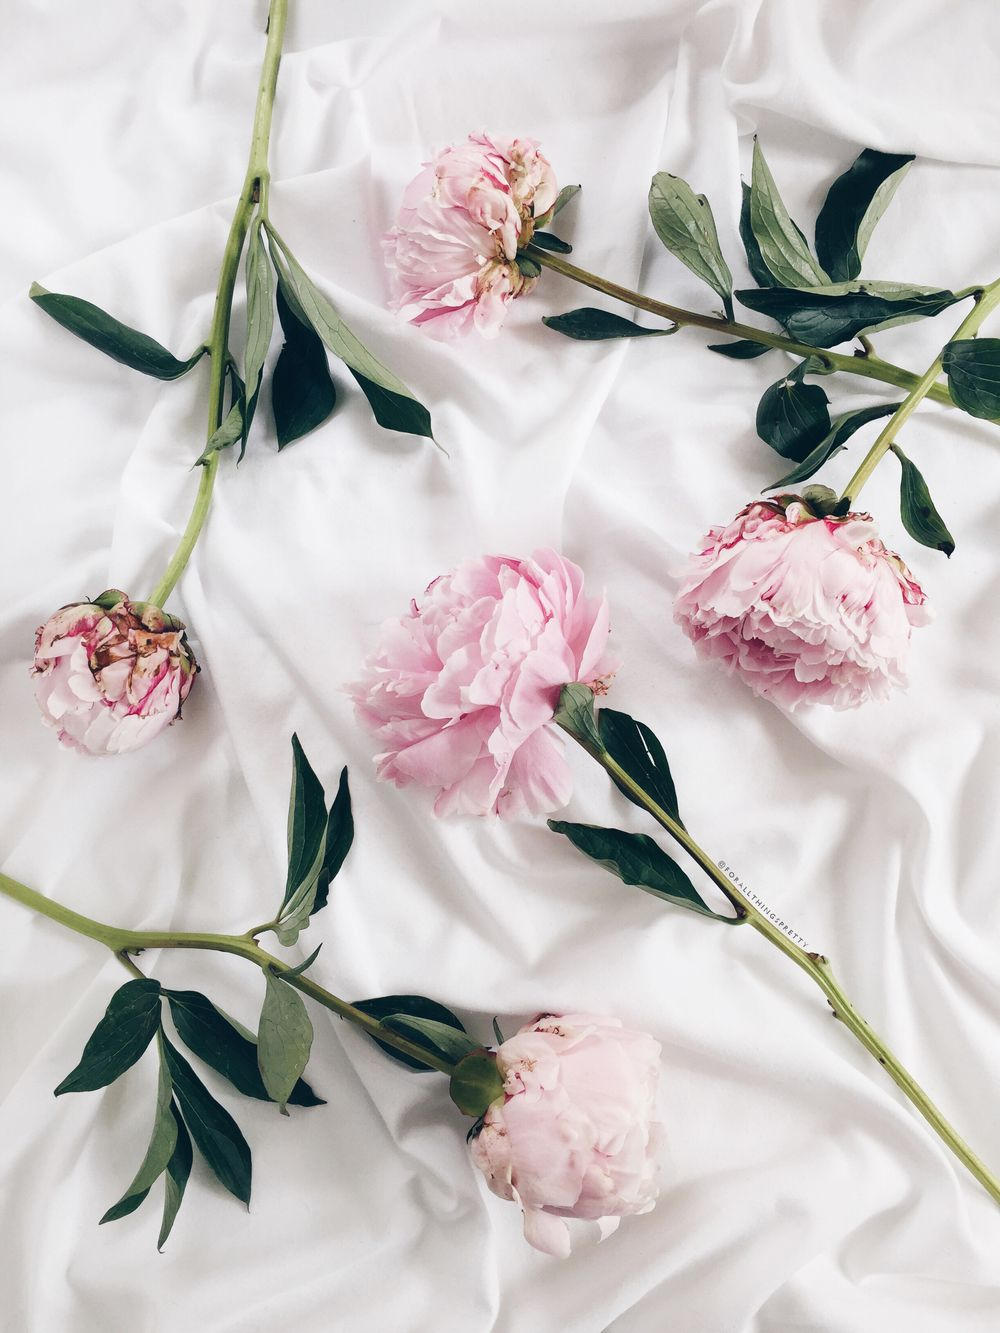 Fleursociety BEST SEO Practices for Florists